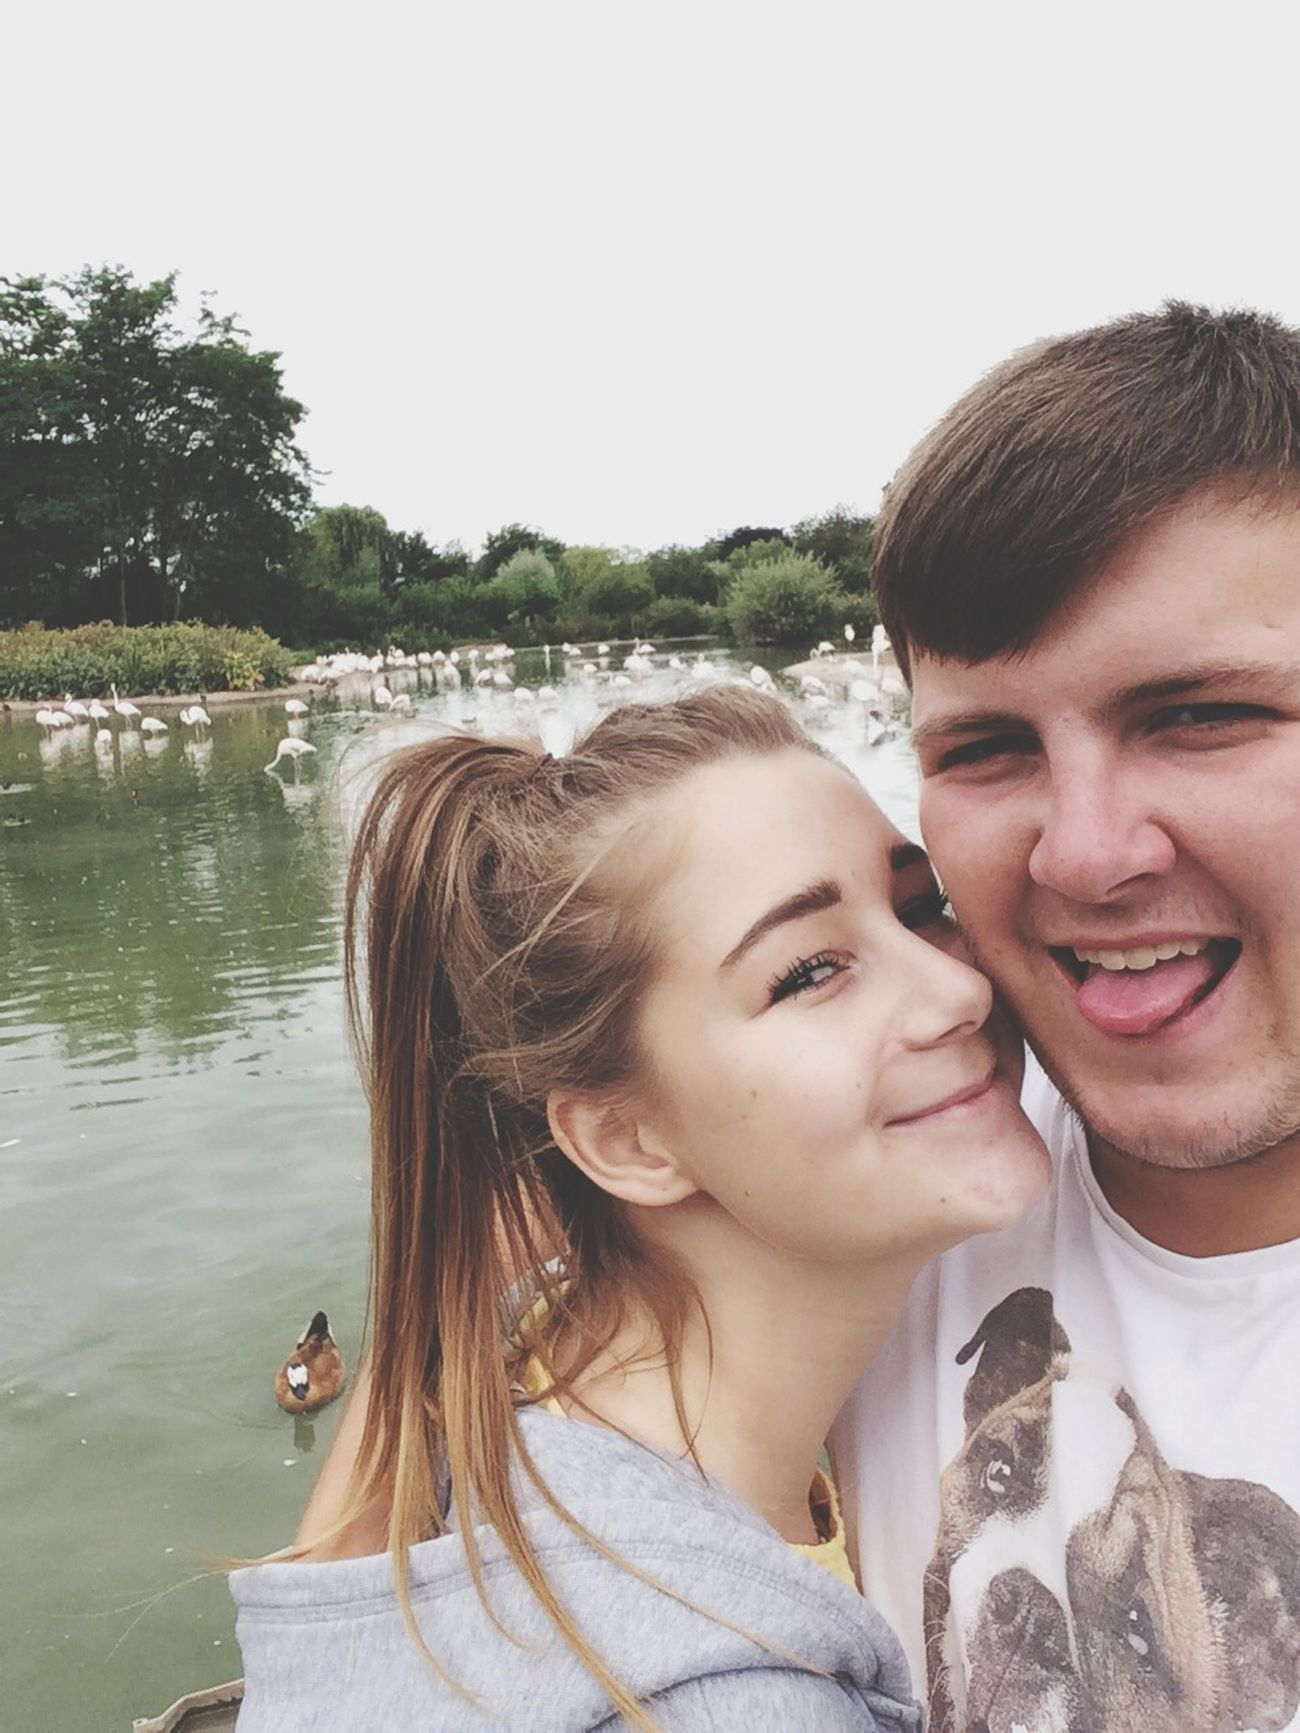 Had a lovely day at Slimbridge. With my beautiful boyfriend Boyfriend❤ Dayout Happy